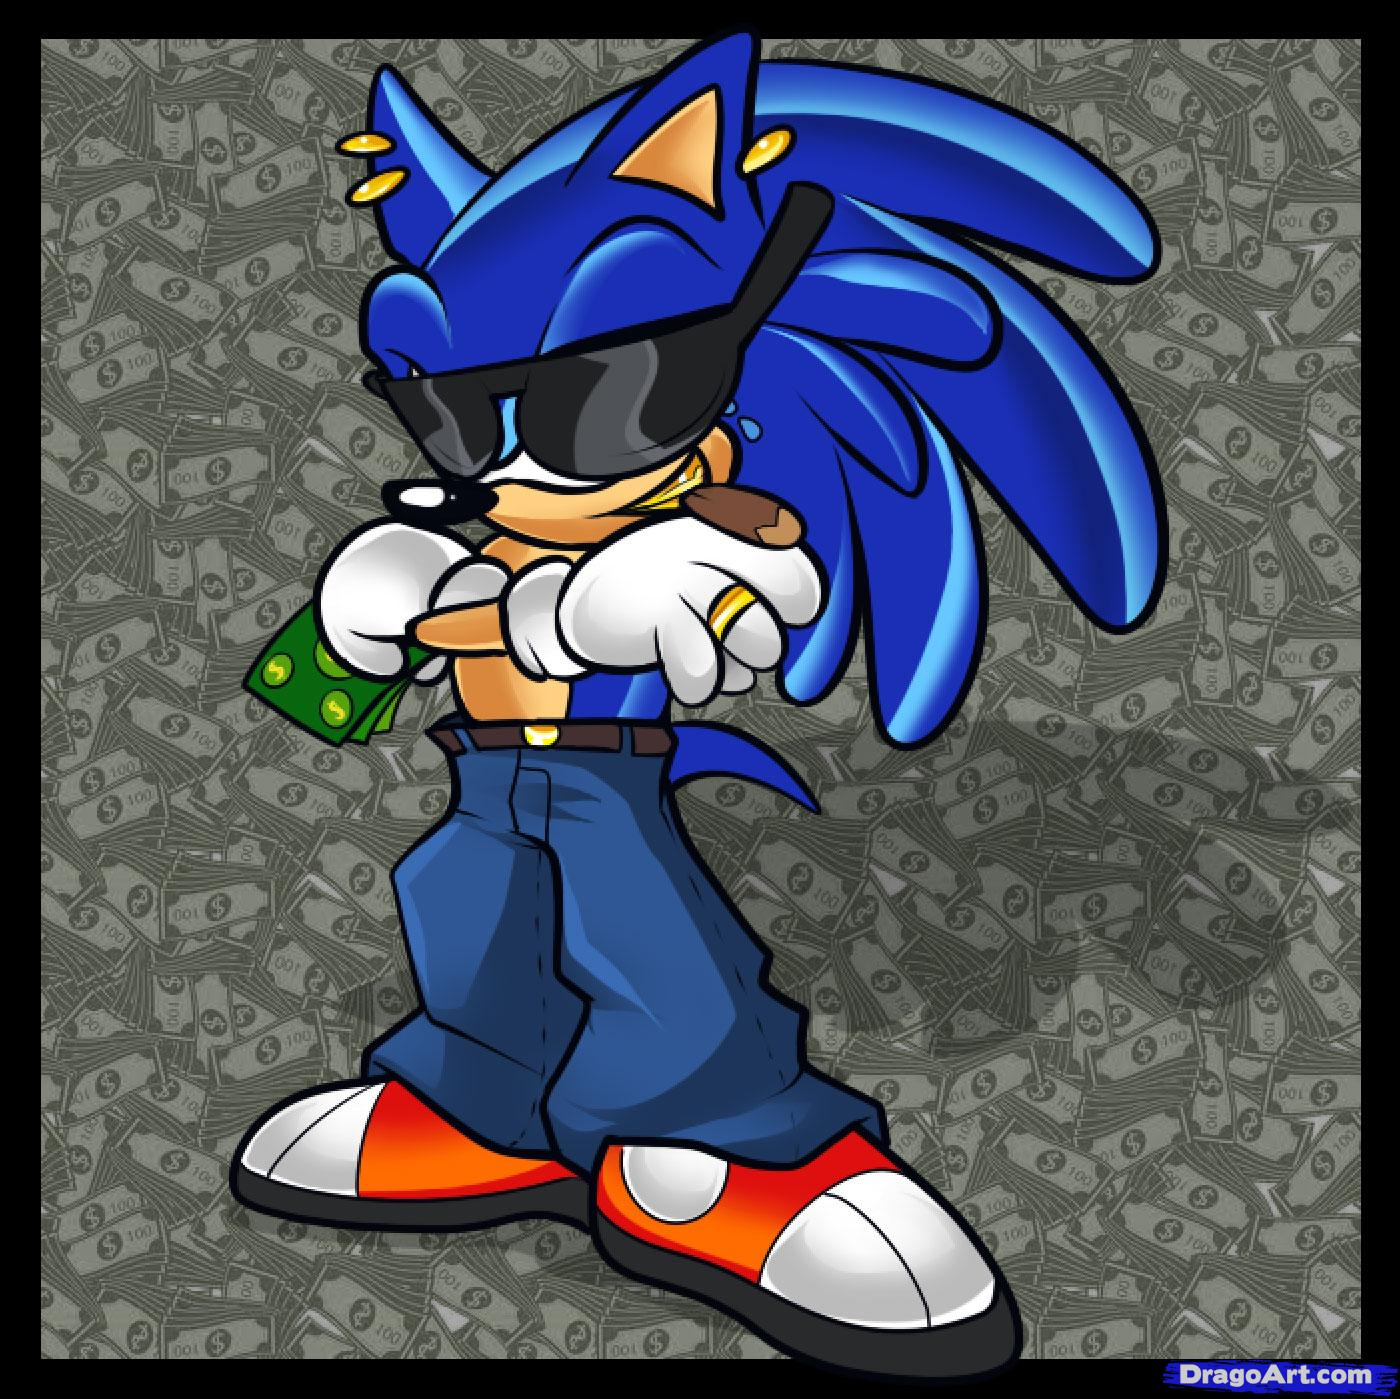 image how to draw gangster sonic 1 000000007228 5 jpg have fun